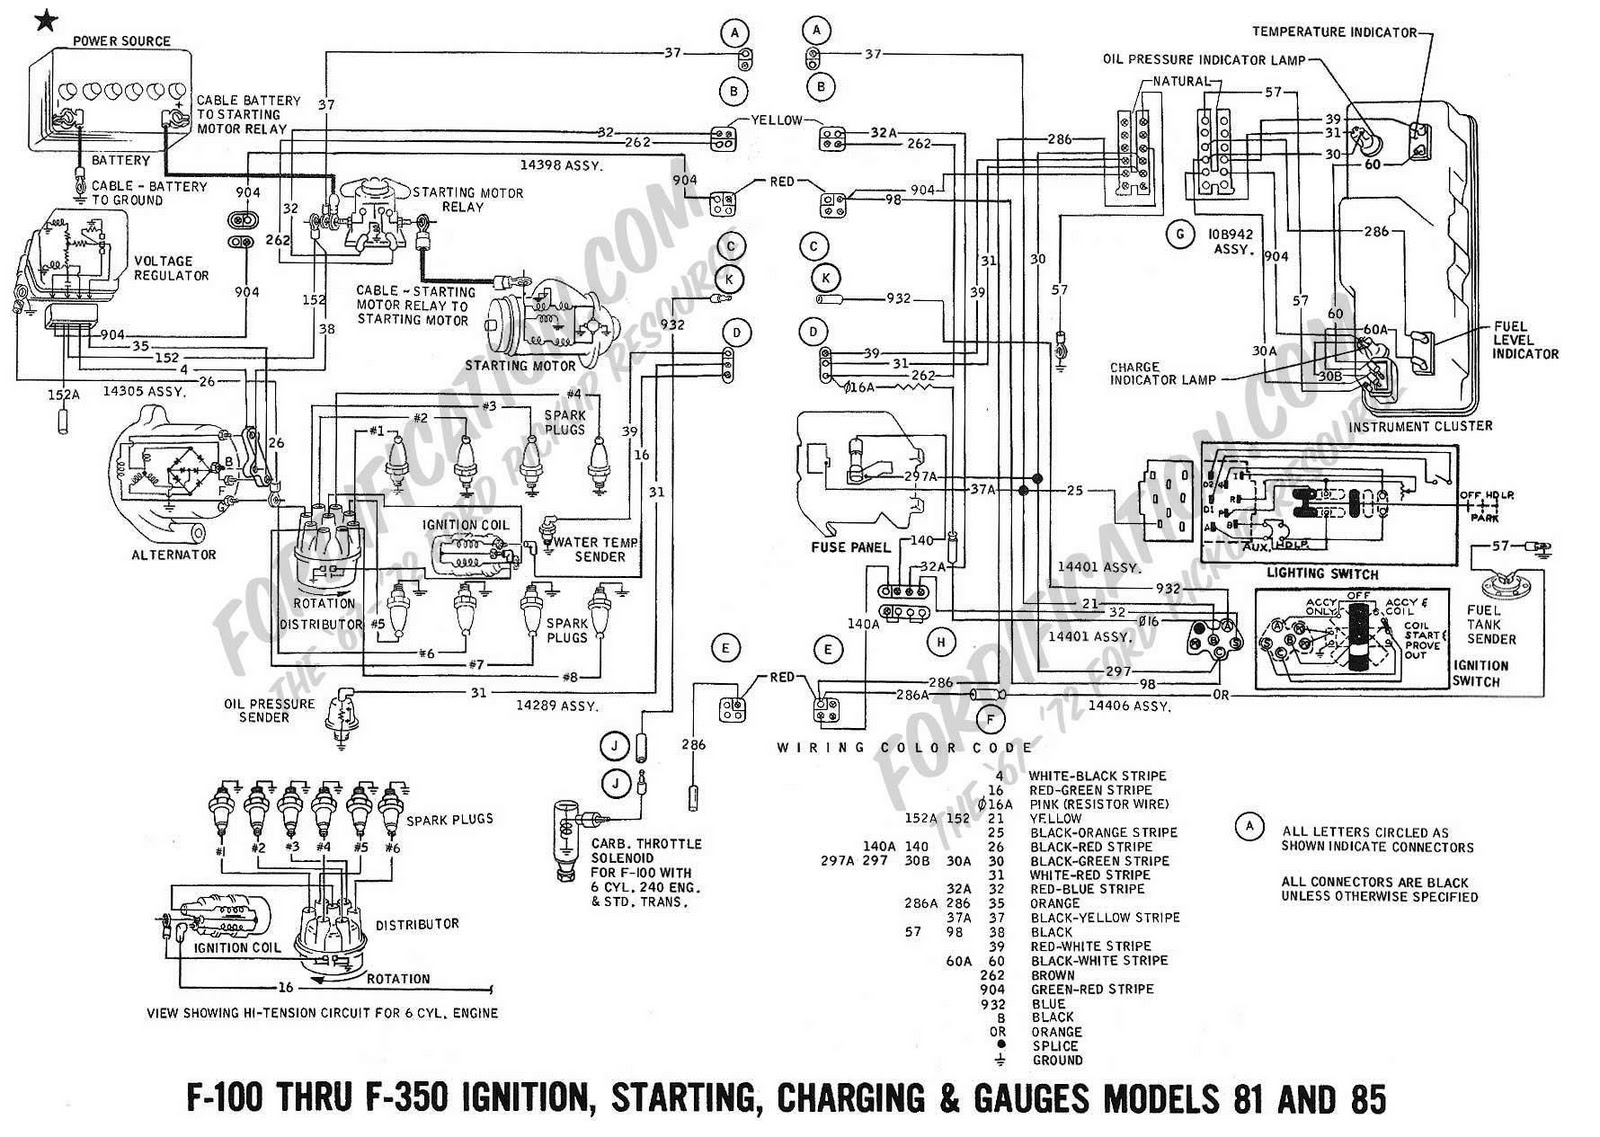 1964 F350 Ford Wiring Harness Diagram Factory Radio E40d F 350 Electrical Imageresizertool Com Trailer Diagrams